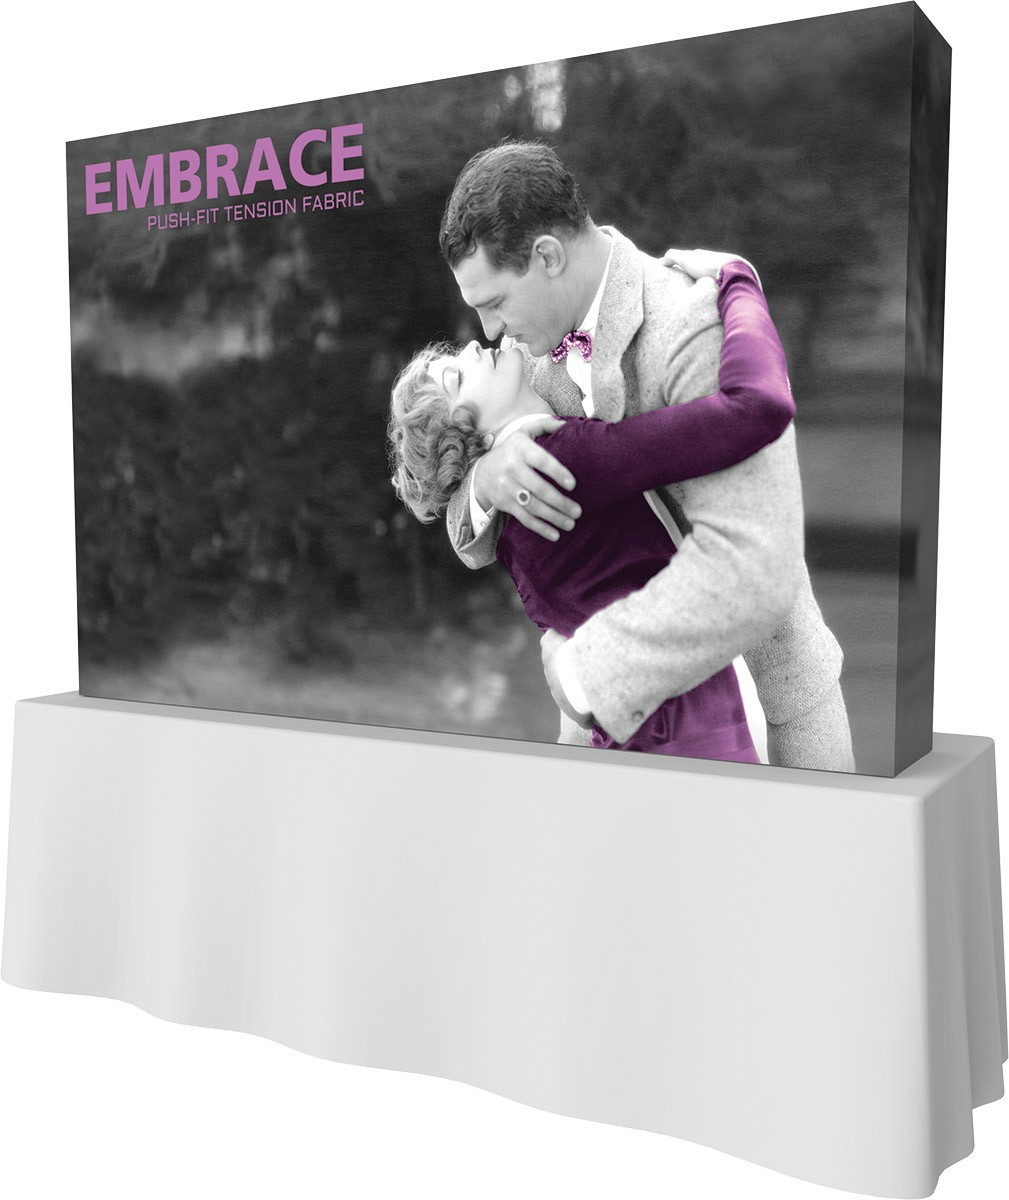 Embrace 8' x 5' Table Top Display